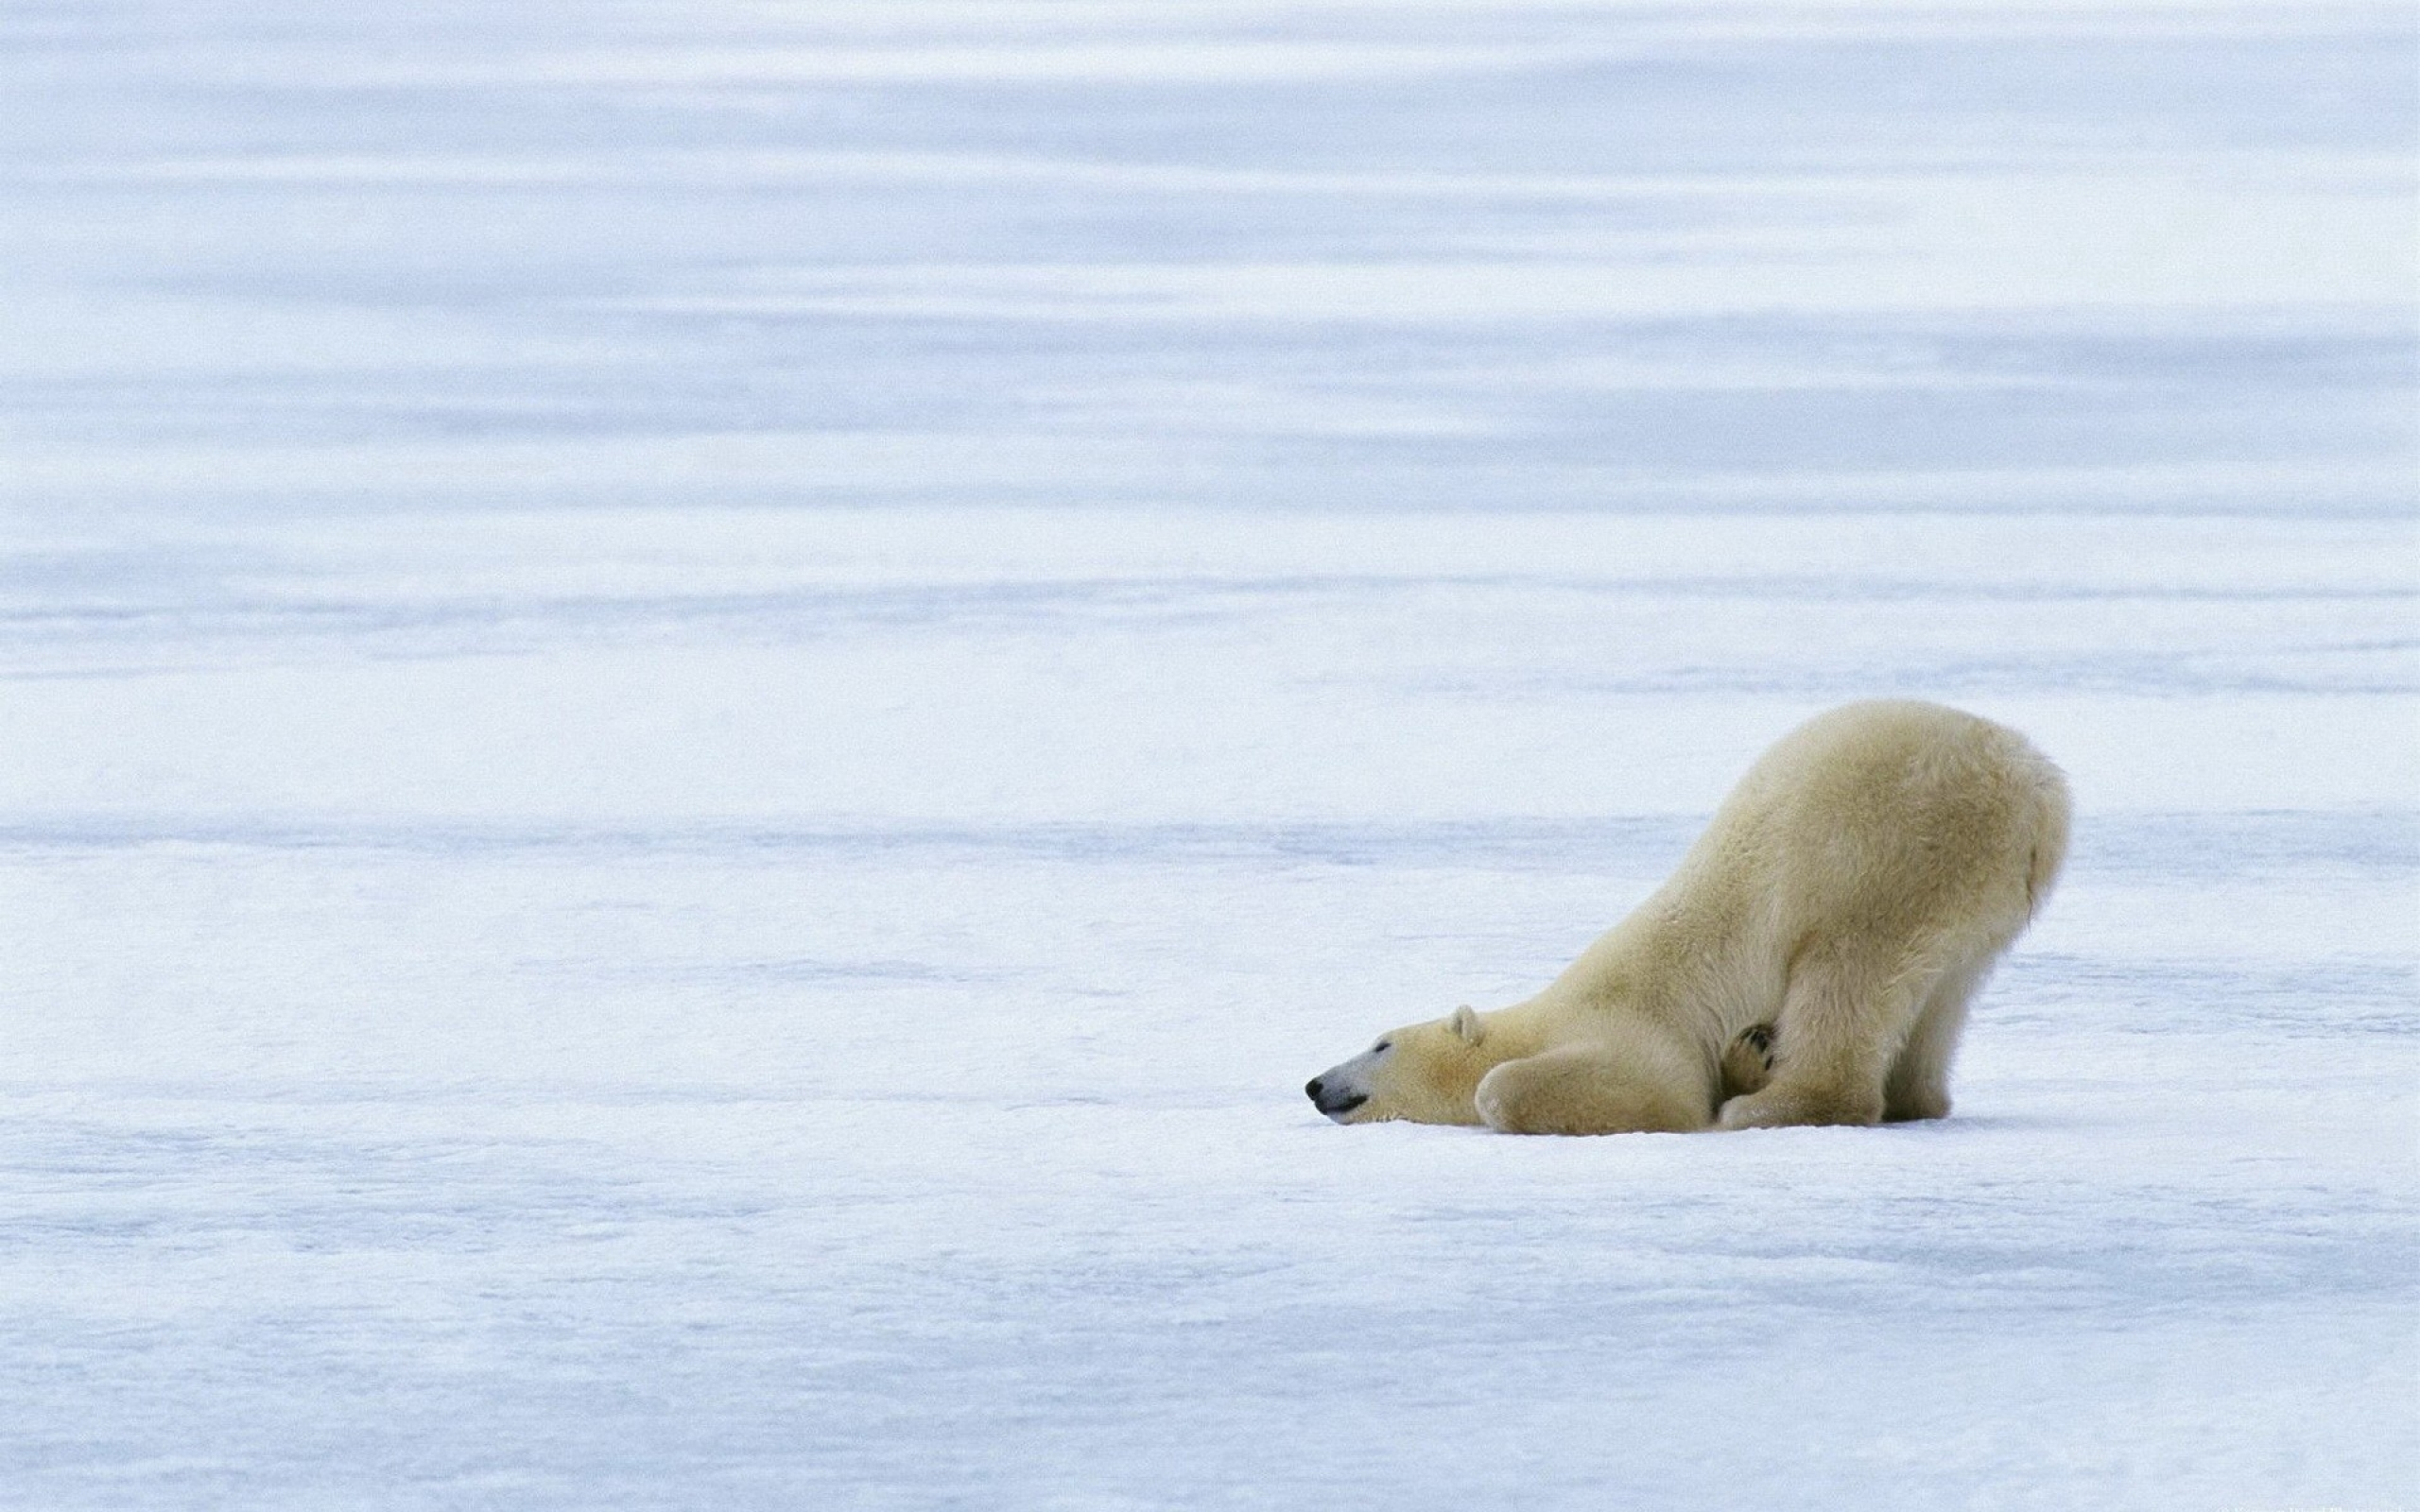 Funny Polar Bear Wallpapers Pictures Photos Images. «